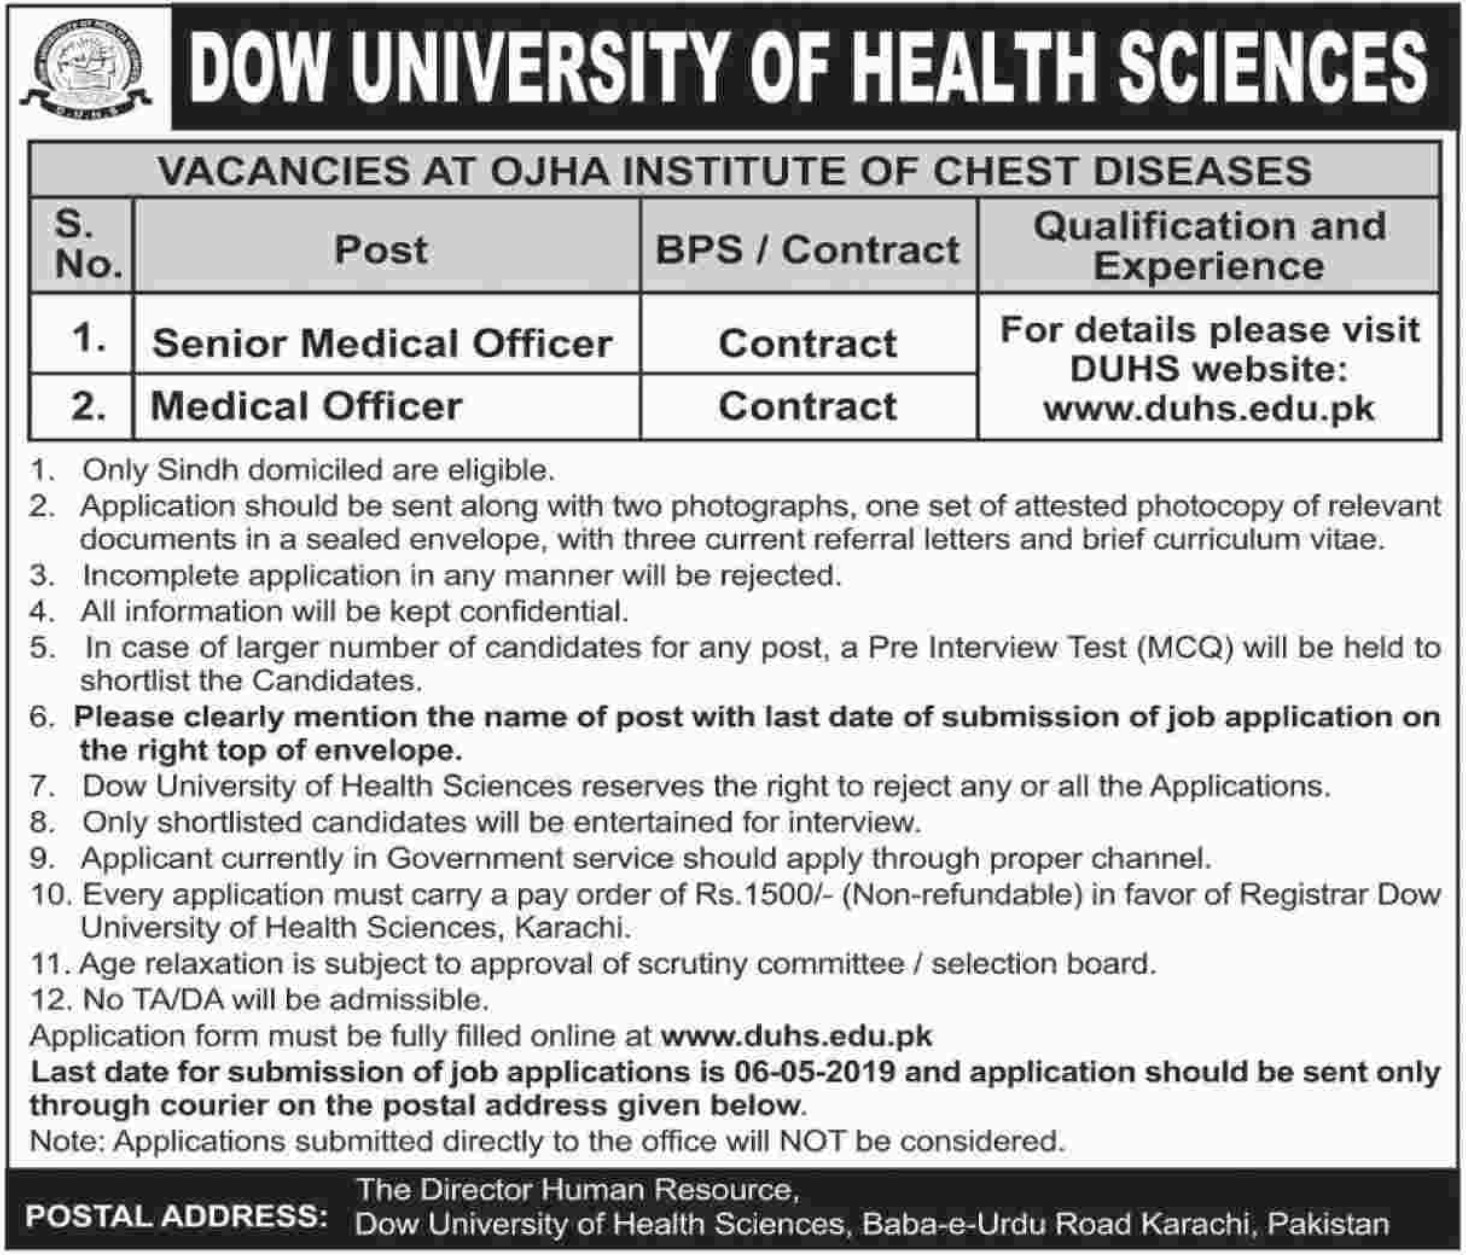 DOW University of Health Sciences DUHS Karachi Jobs 2019 Latest